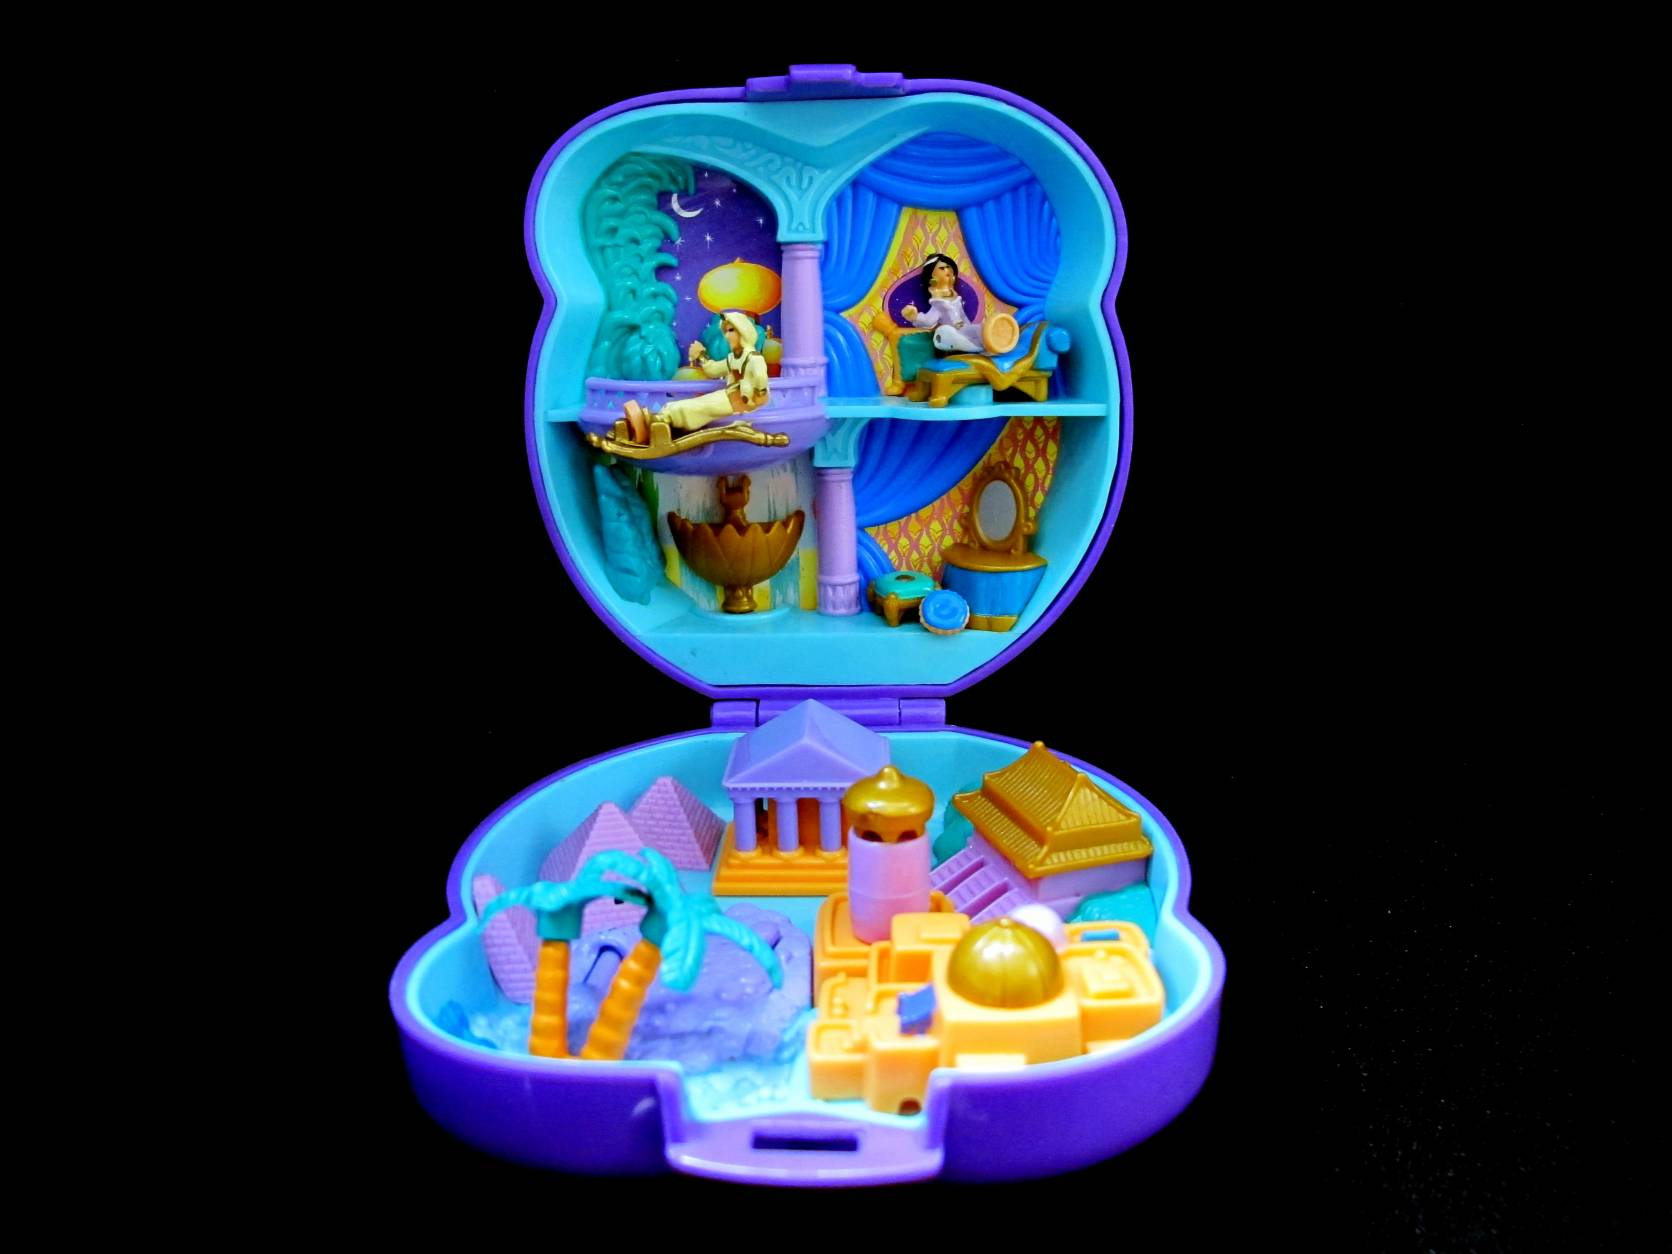 1995 Disney Aladdin playcase (2)